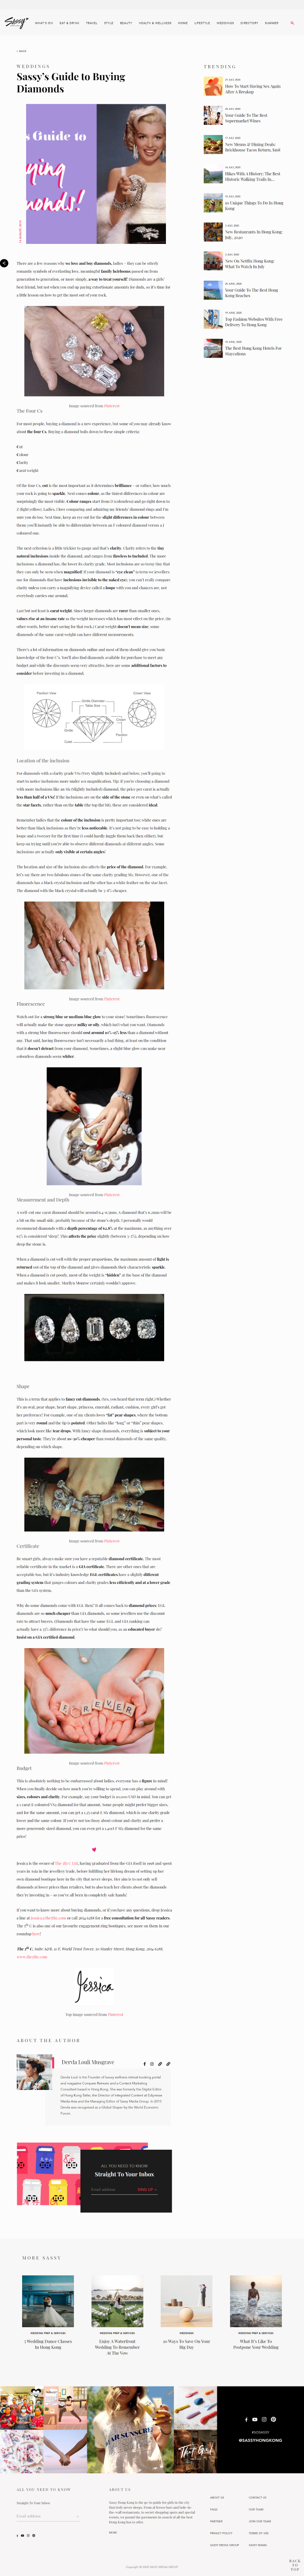 The 5th C_Sassy Hong Kong_Sassy's Guide to Buying Diamonds